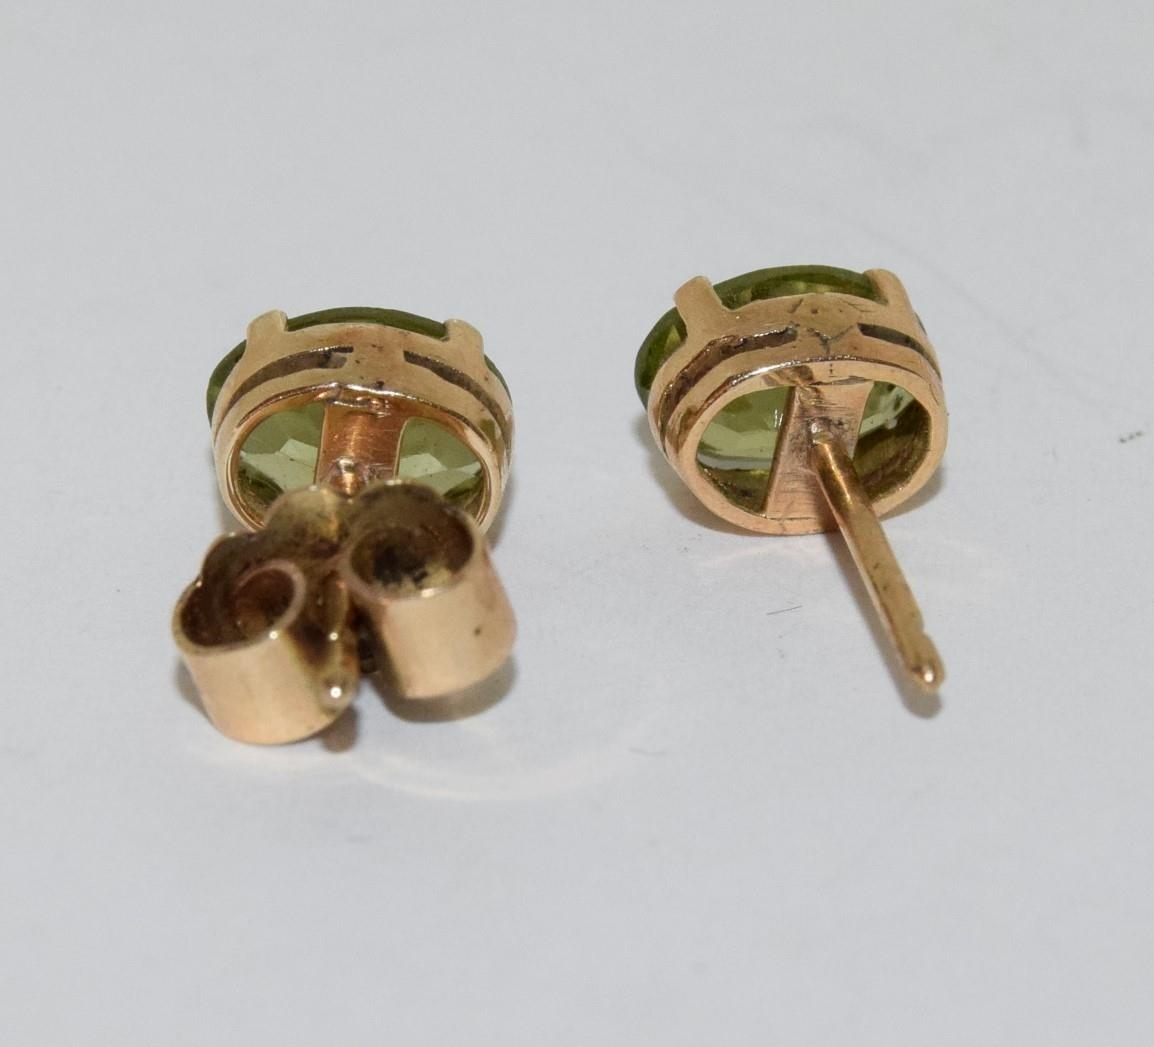 9ct gold ladies cameo ring together with a pair of gold peridot earrings - Image 5 of 5